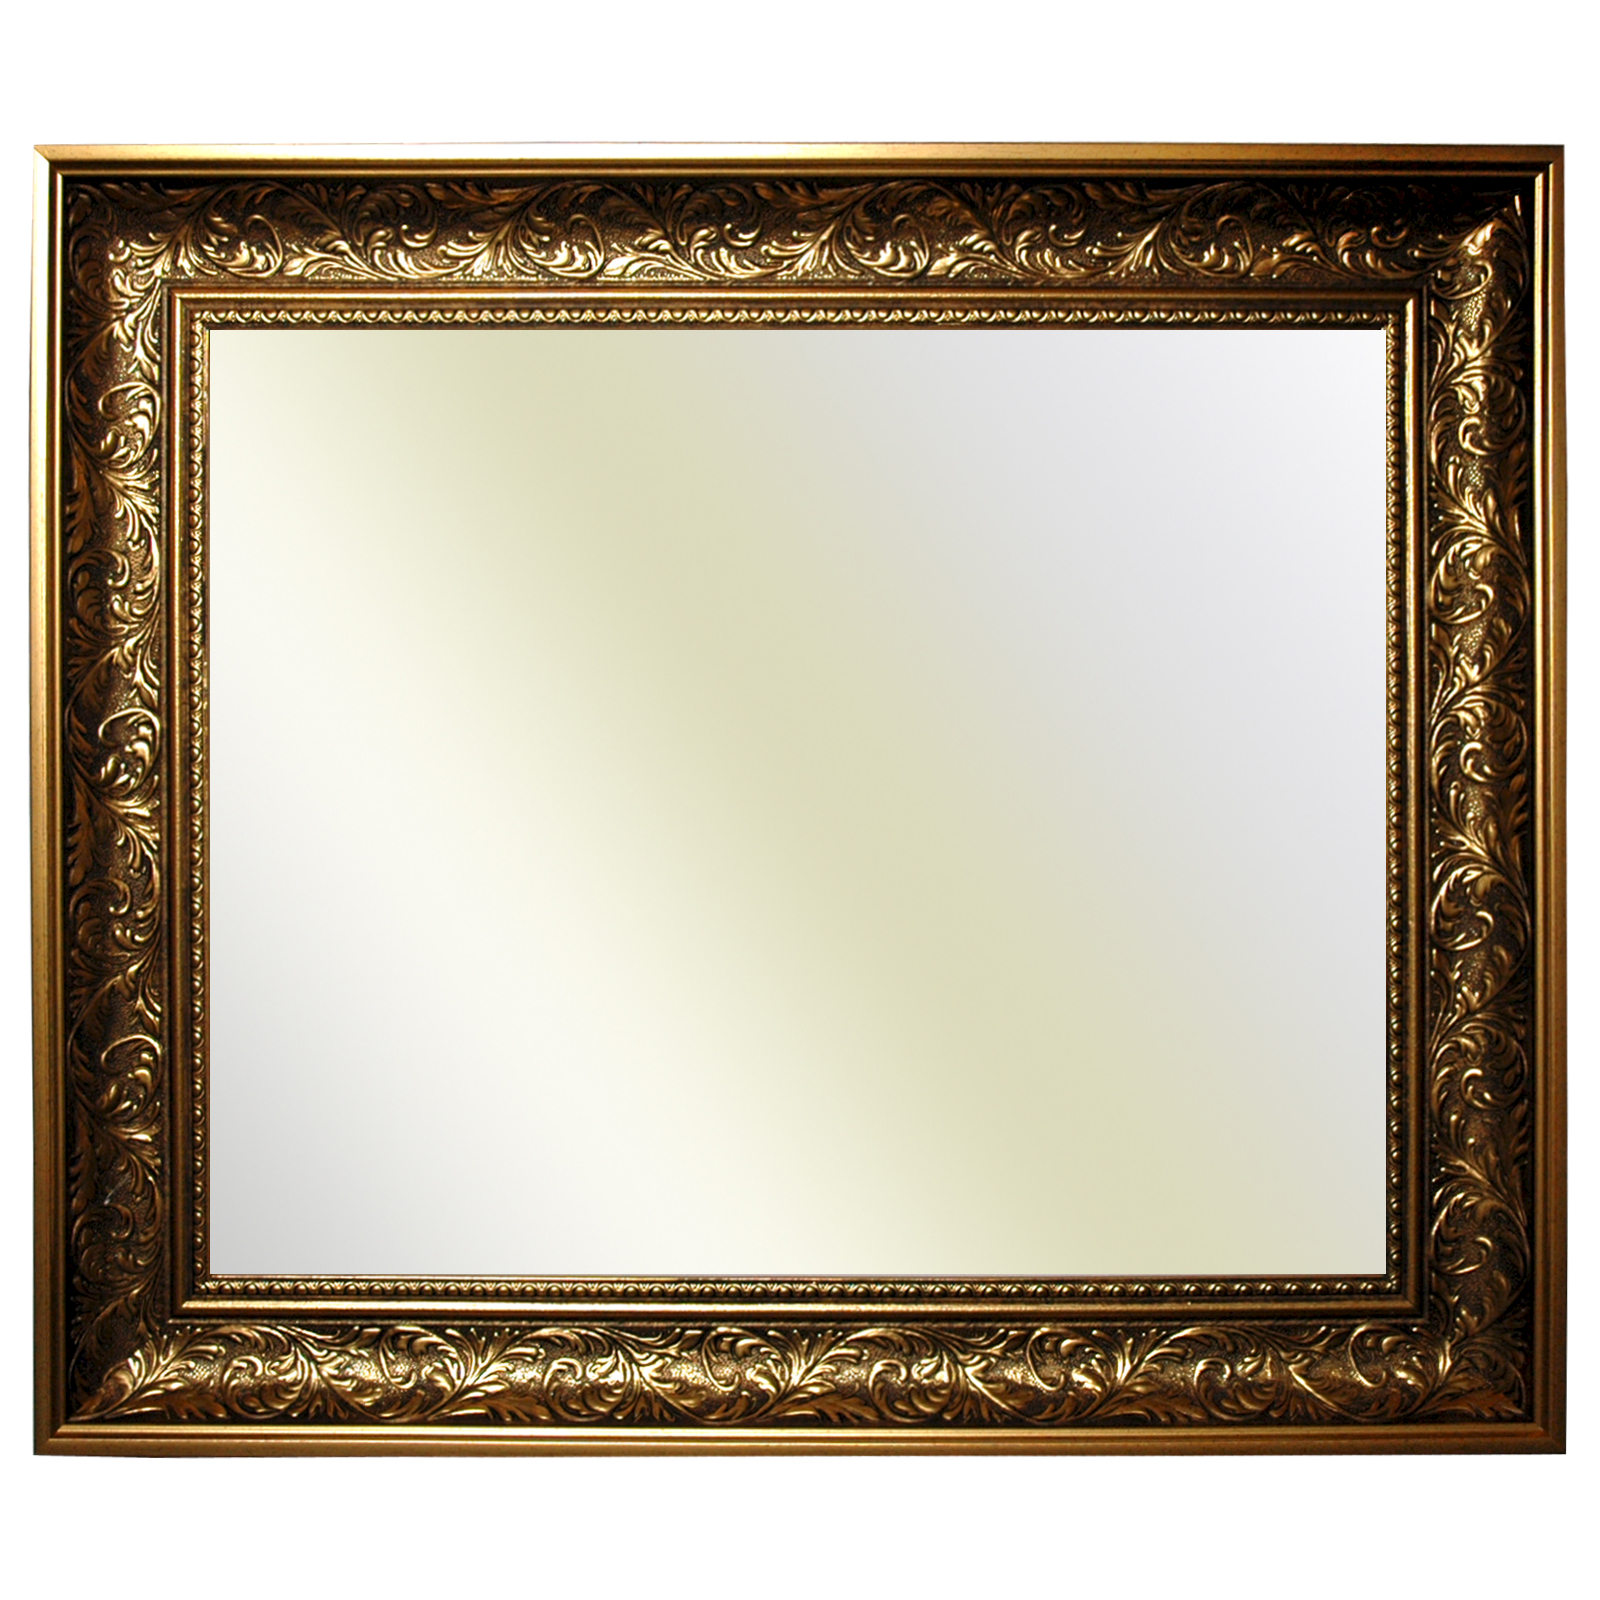 Baroque frame gold finely decorated, 917 ORO, various variants | eBay